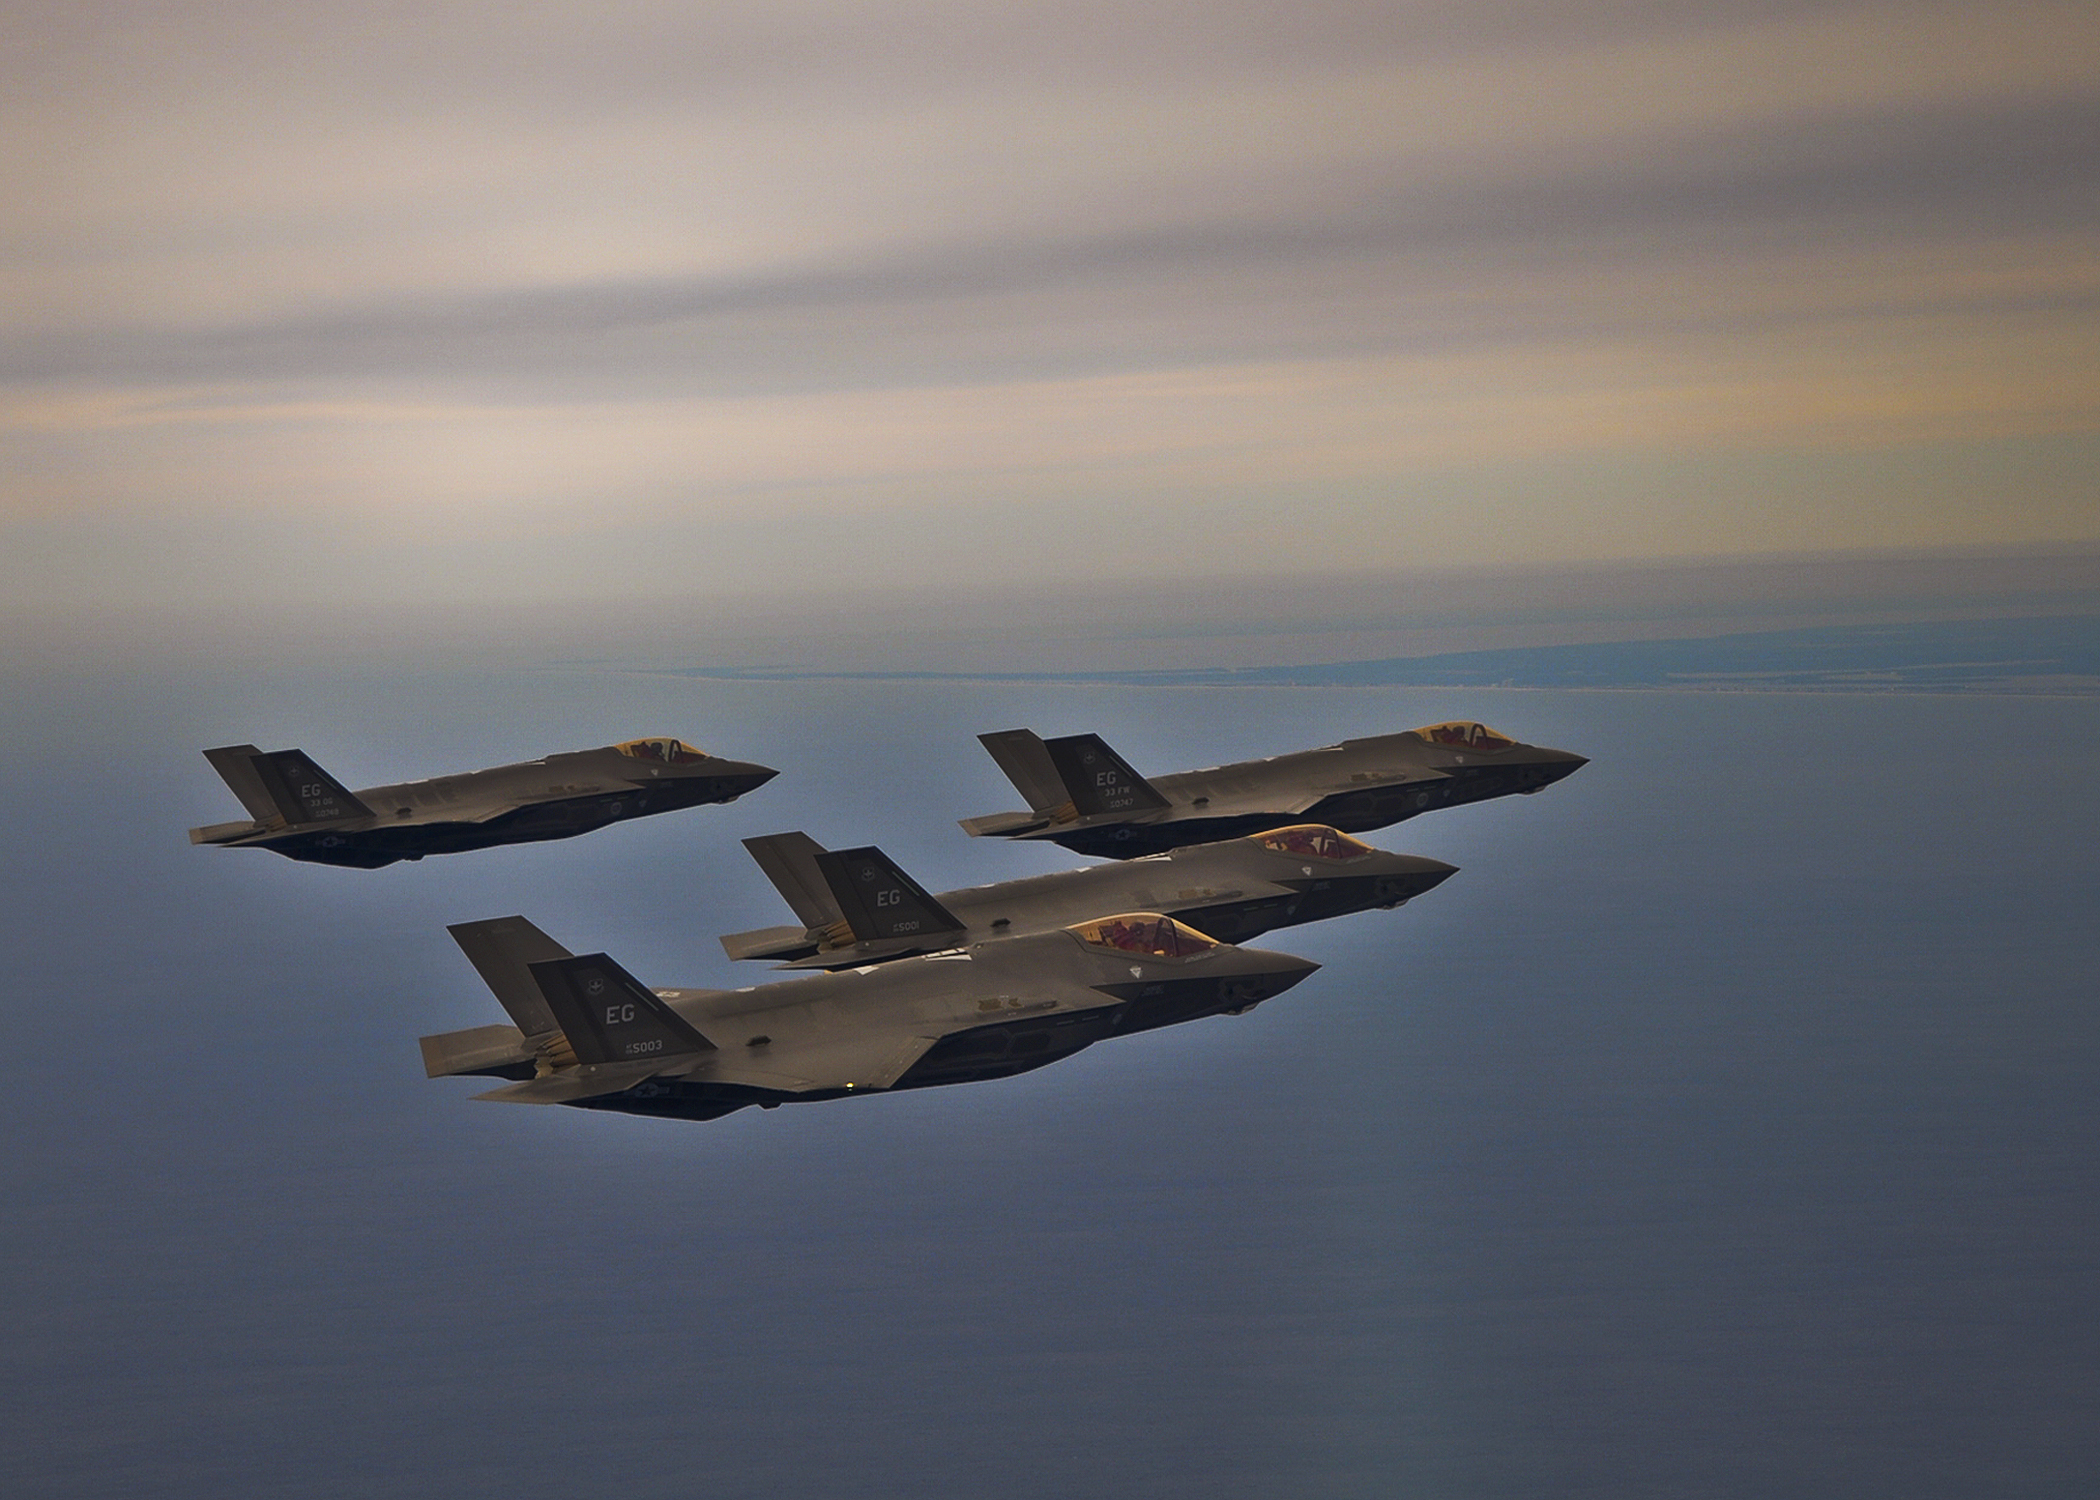 The Air Force's F-35A